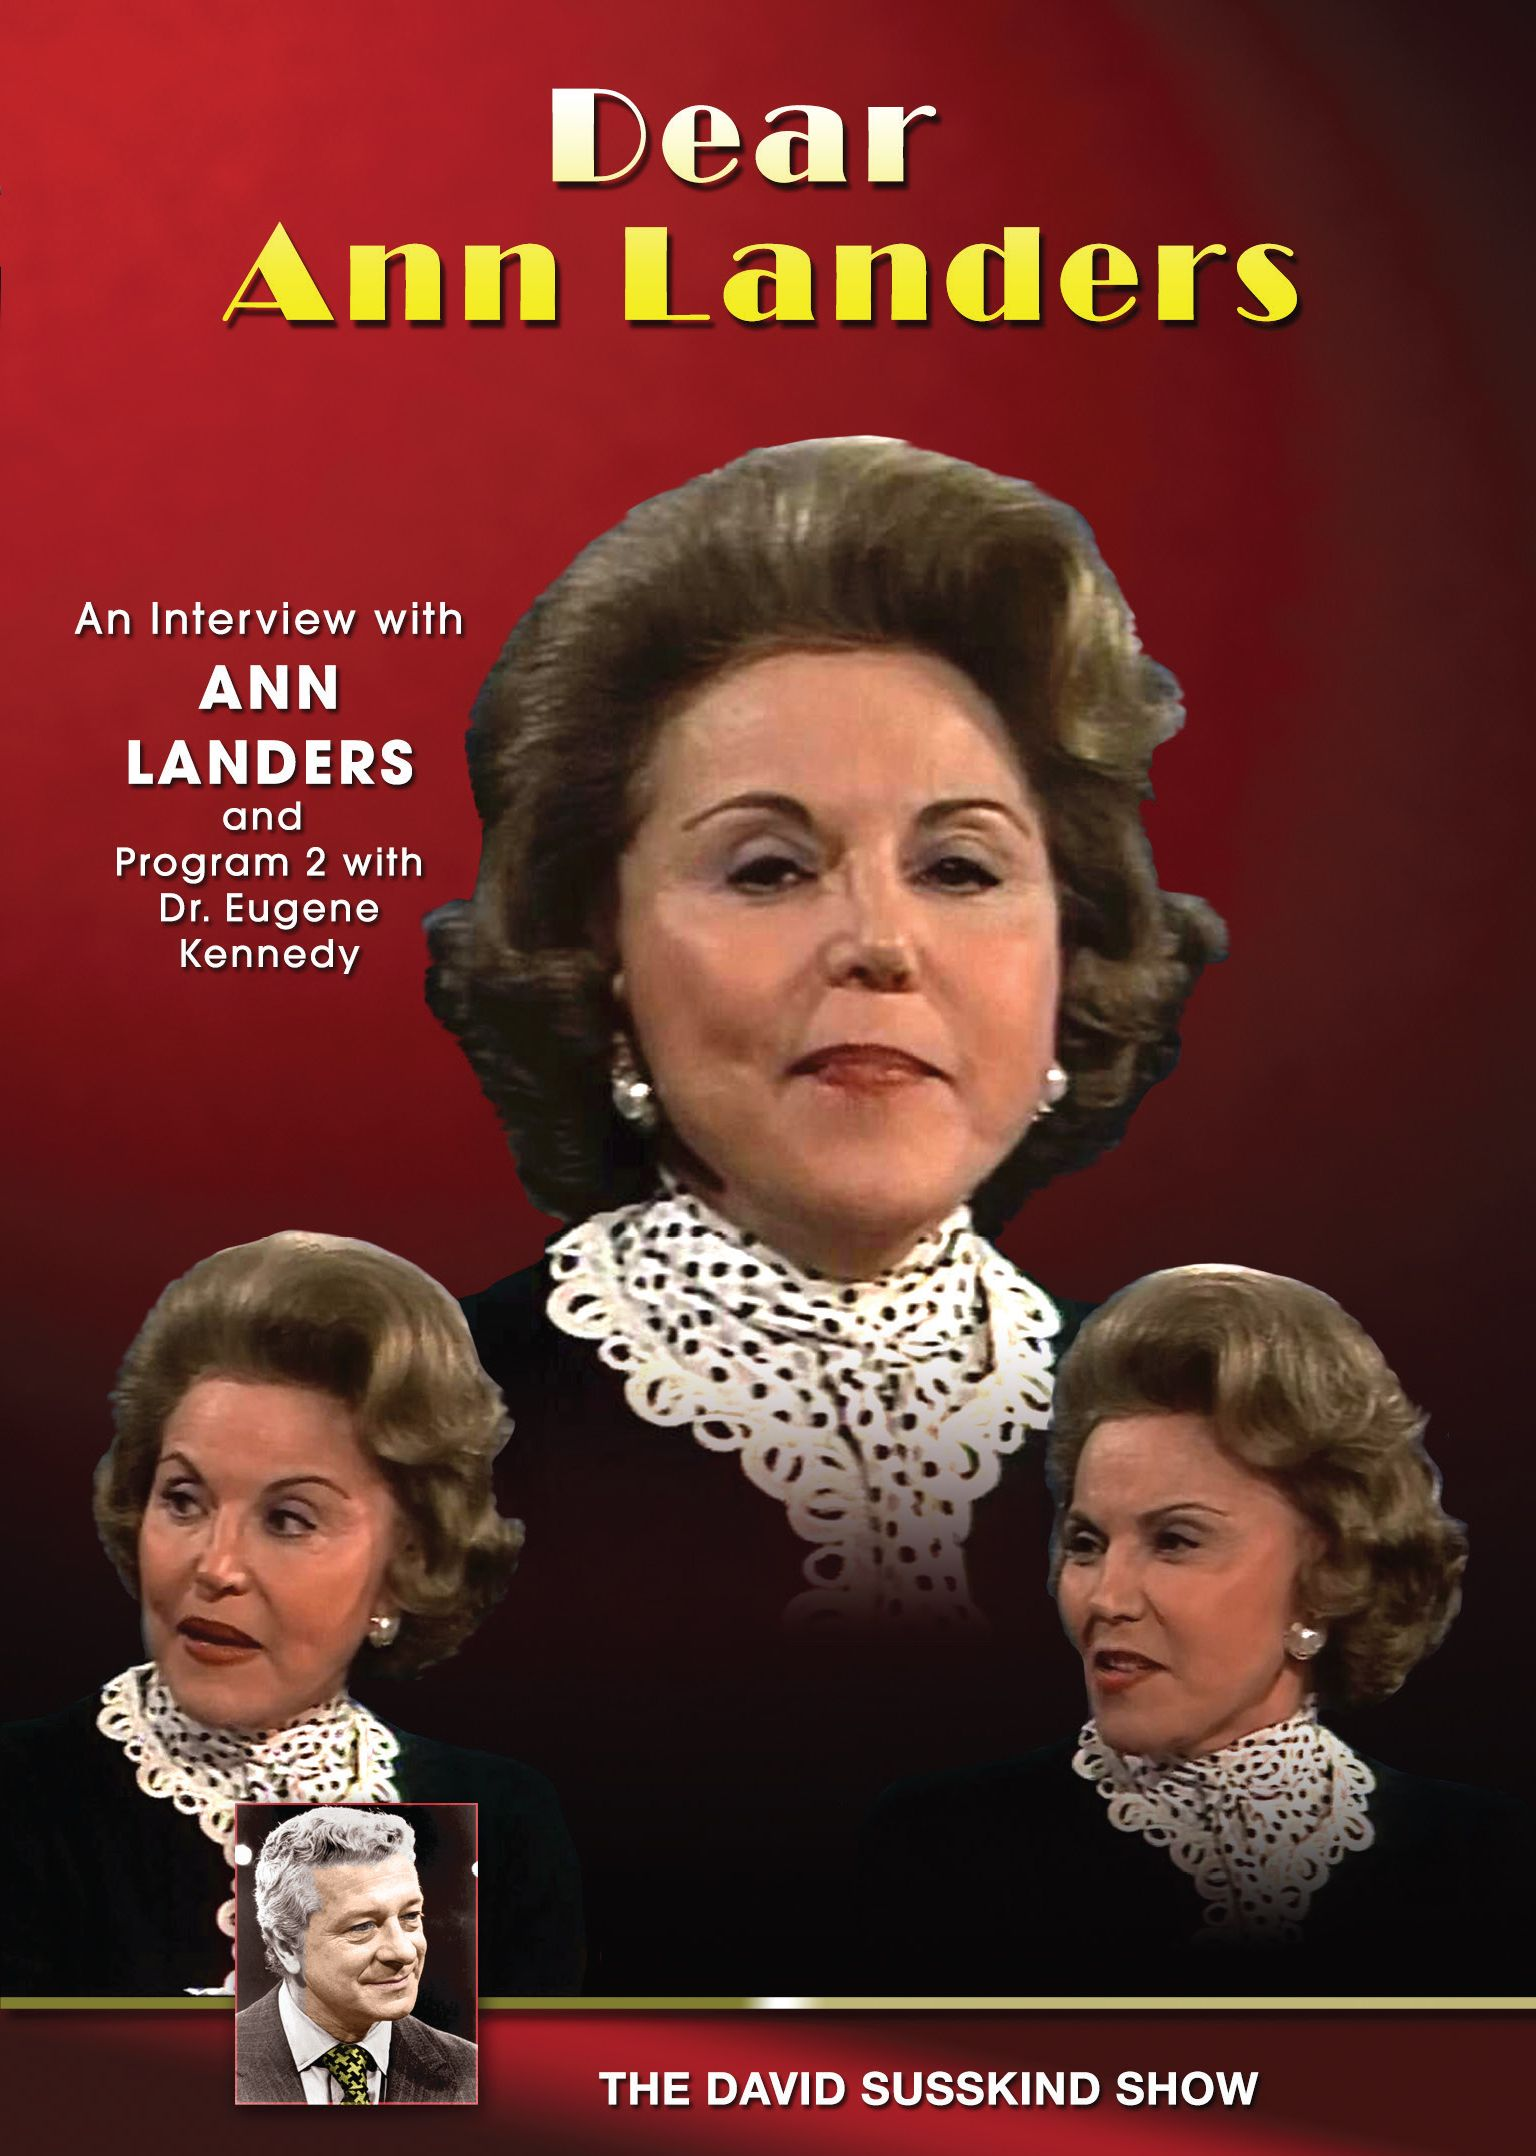 The David Susskind Show: Dear Ann Landers